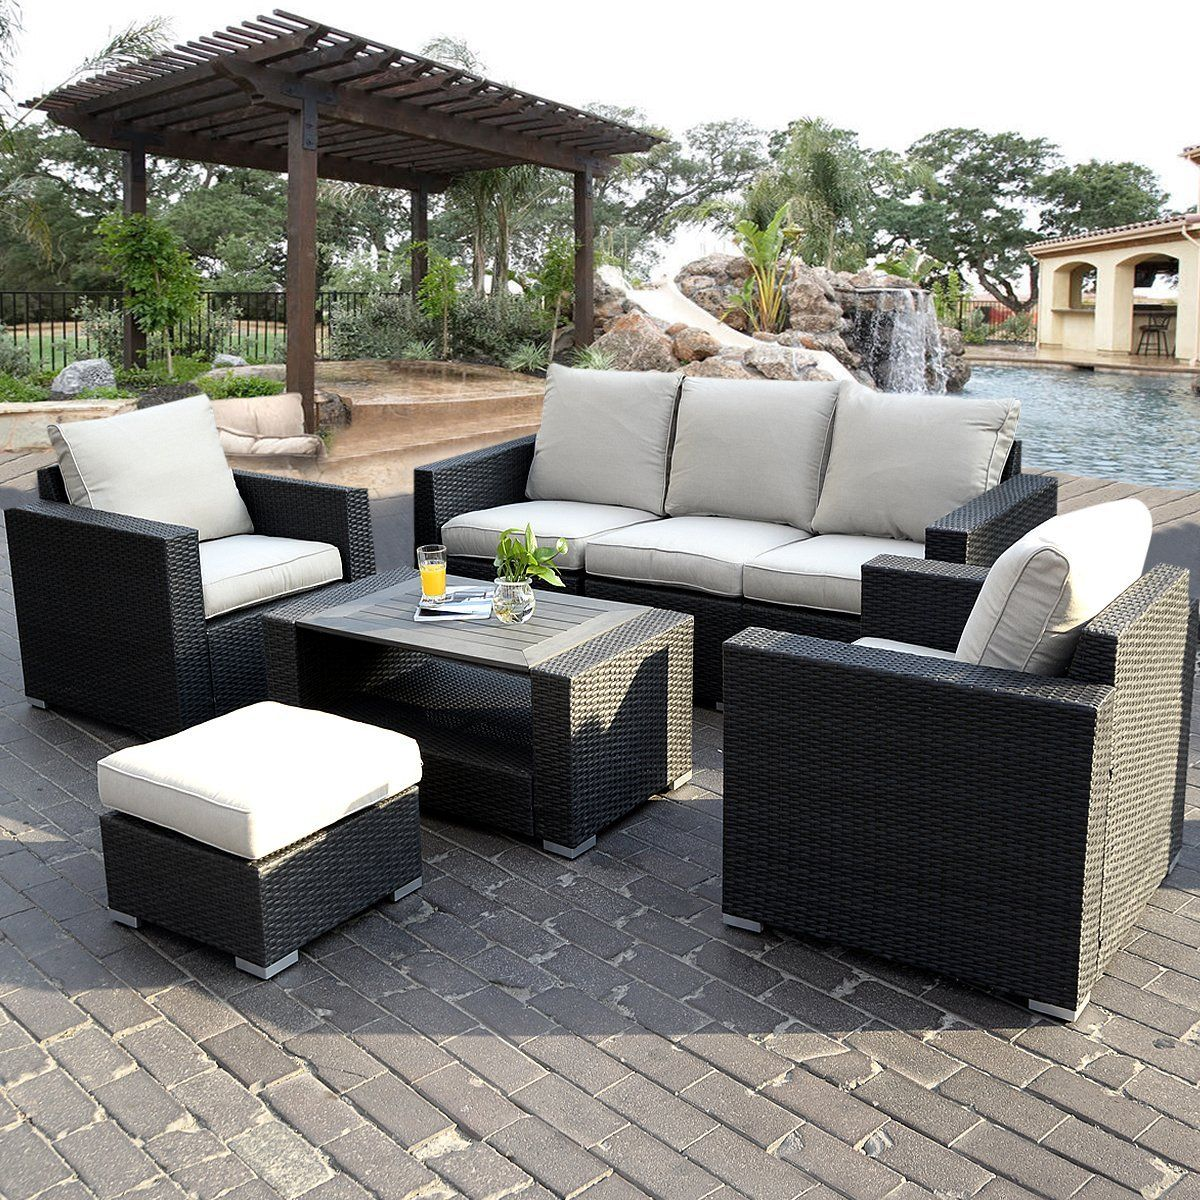 Fds 7pc Rattan Outdoor Garden Furniture Patio Corner Sofa Set Pe Wicker Conservatory Co Uk Outdoors